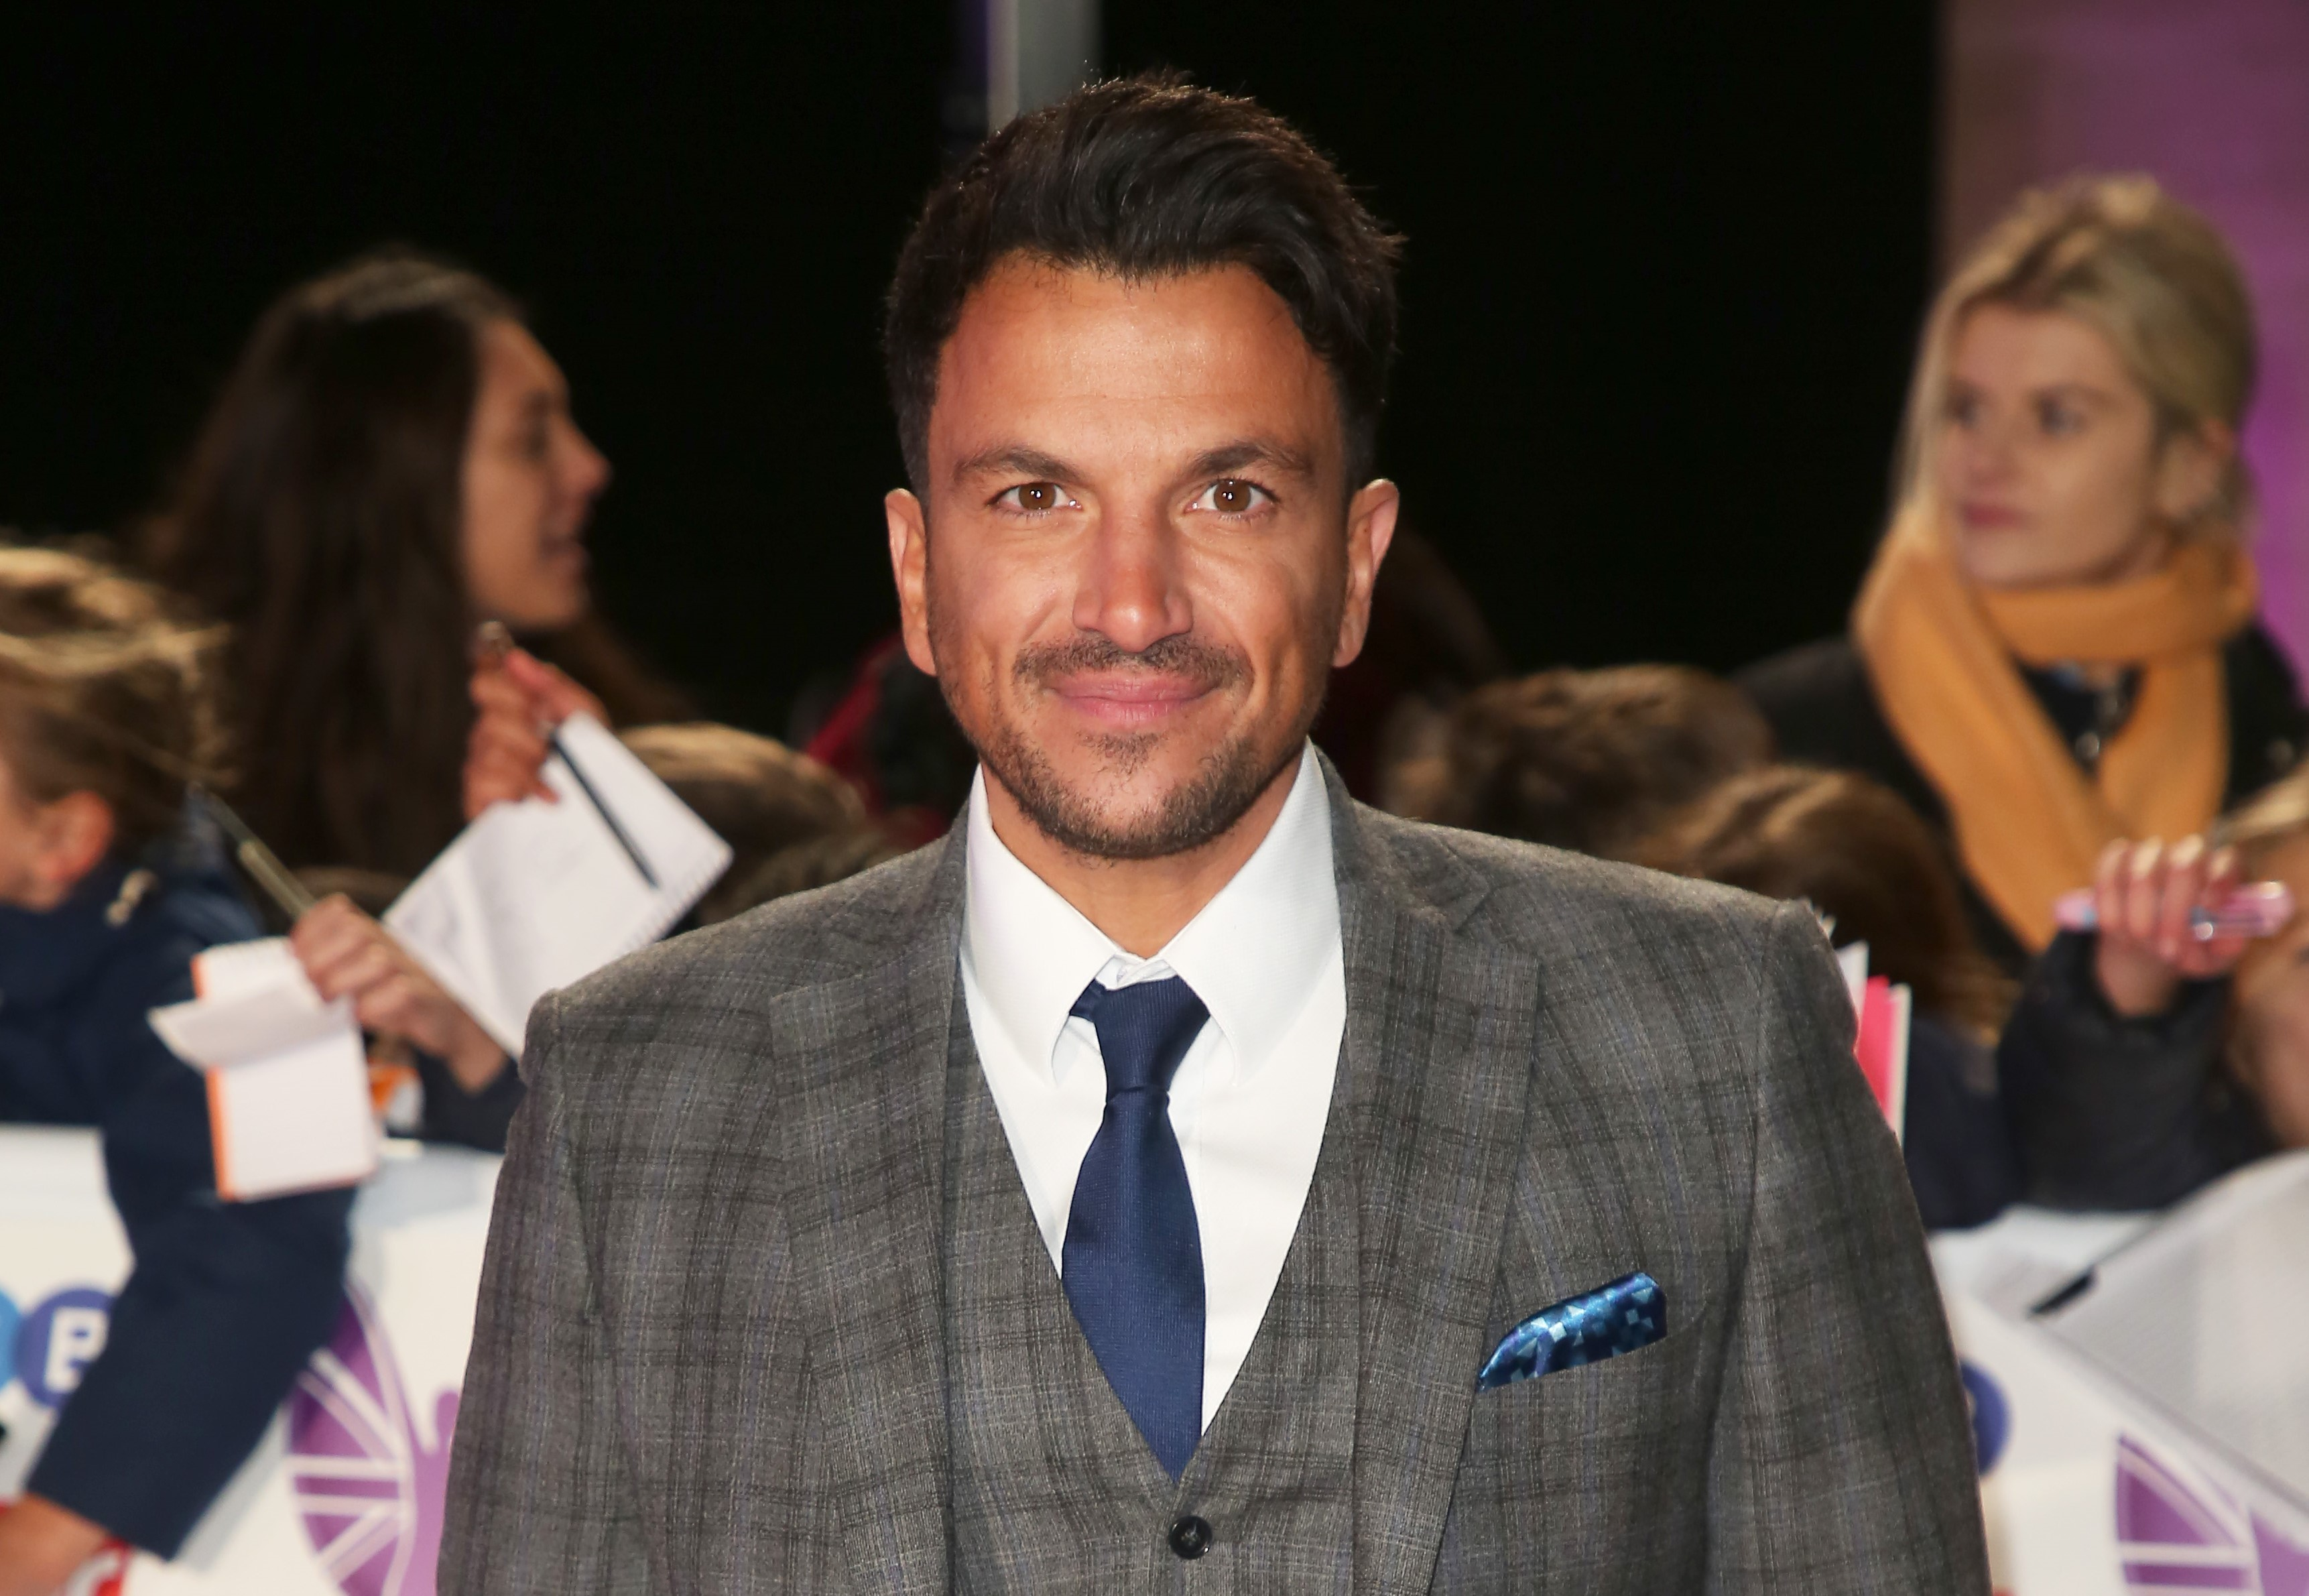 Peter Andre announces he's signed to American management team